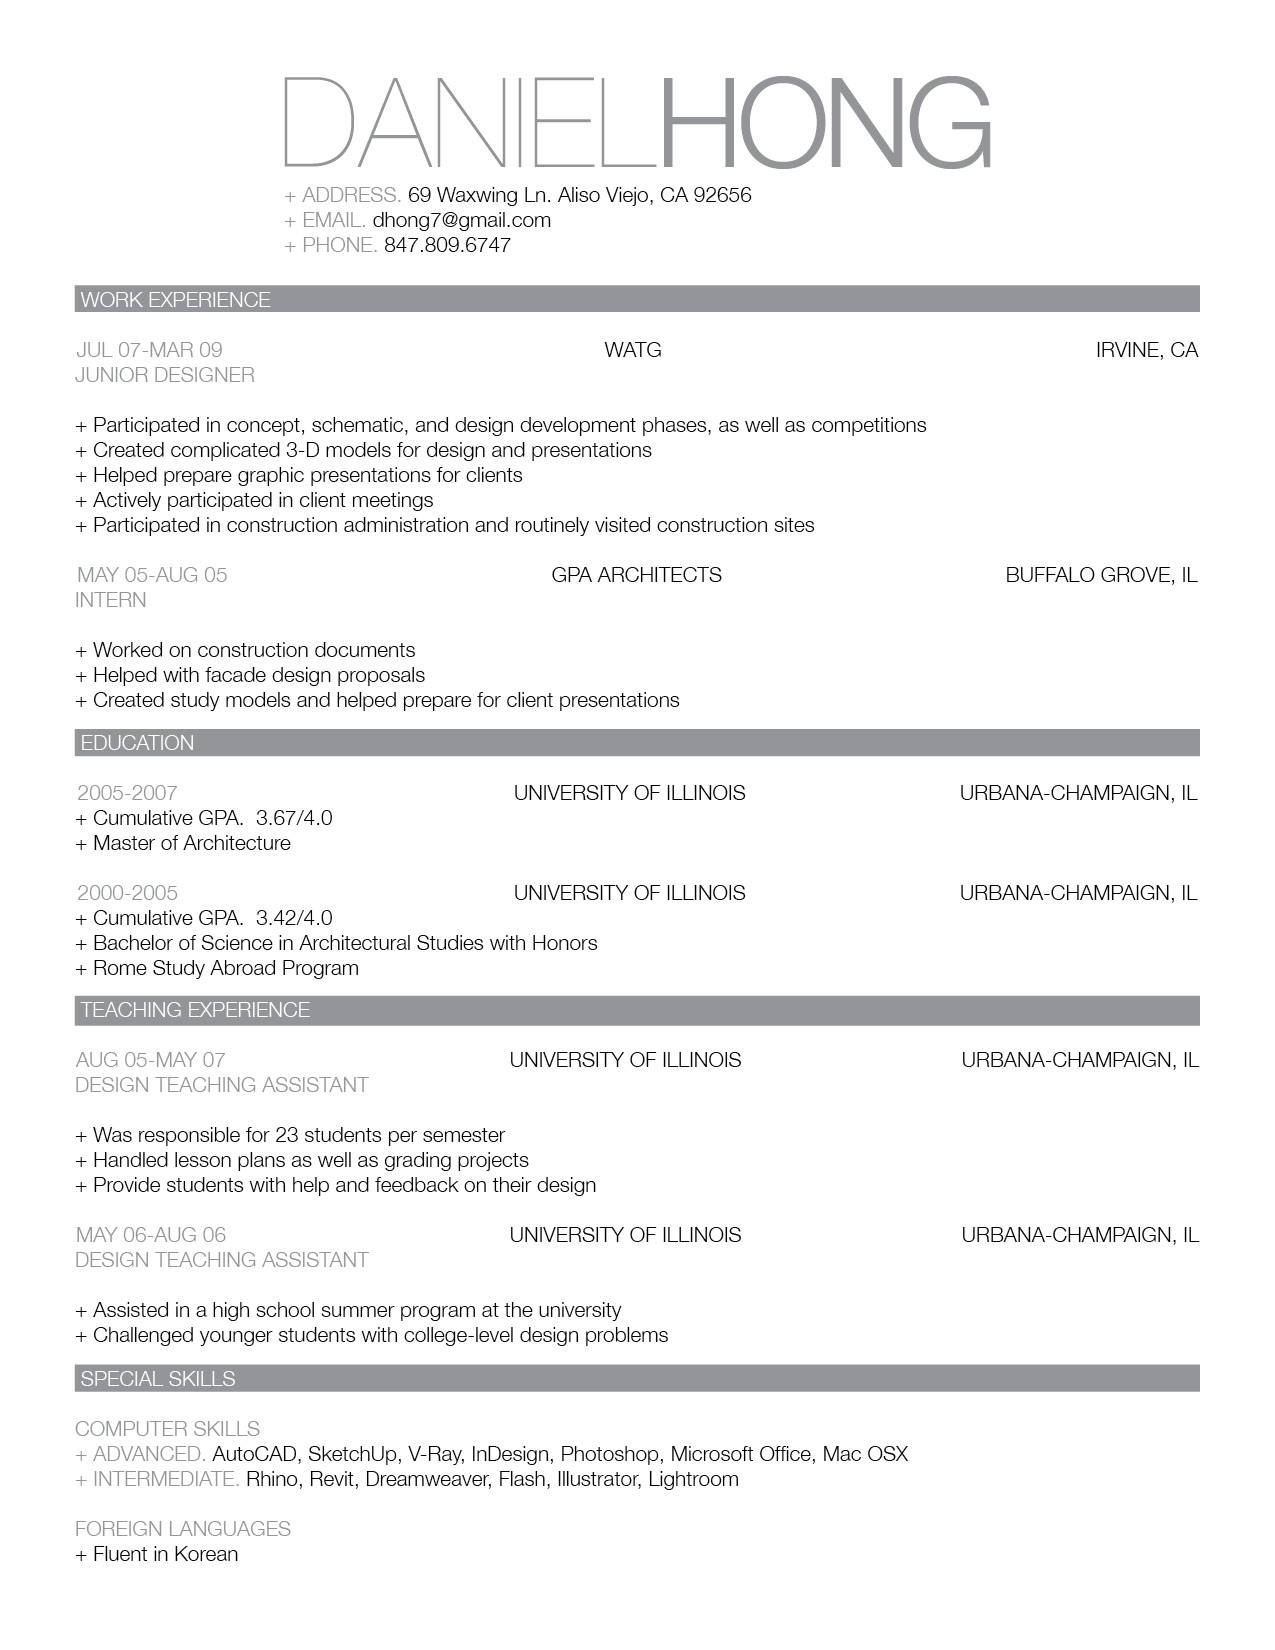 Opposenewapstandardsus  Winsome Resume Chronological Basic Basic Sample Resume Cover Letter  With Extraordinary Simple  With Delightful Resume For High School Graduate With No Work Experience Also Resume Online Builder In Addition Private Investigator Resume And Engineer Resume Template As Well As Government Resumes Additionally Beginners Acting Resume From Writeupdonwebhomeipnet With Opposenewapstandardsus  Extraordinary Resume Chronological Basic Basic Sample Resume Cover Letter  With Delightful Simple  And Winsome Resume For High School Graduate With No Work Experience Also Resume Online Builder In Addition Private Investigator Resume From Writeupdonwebhomeipnet